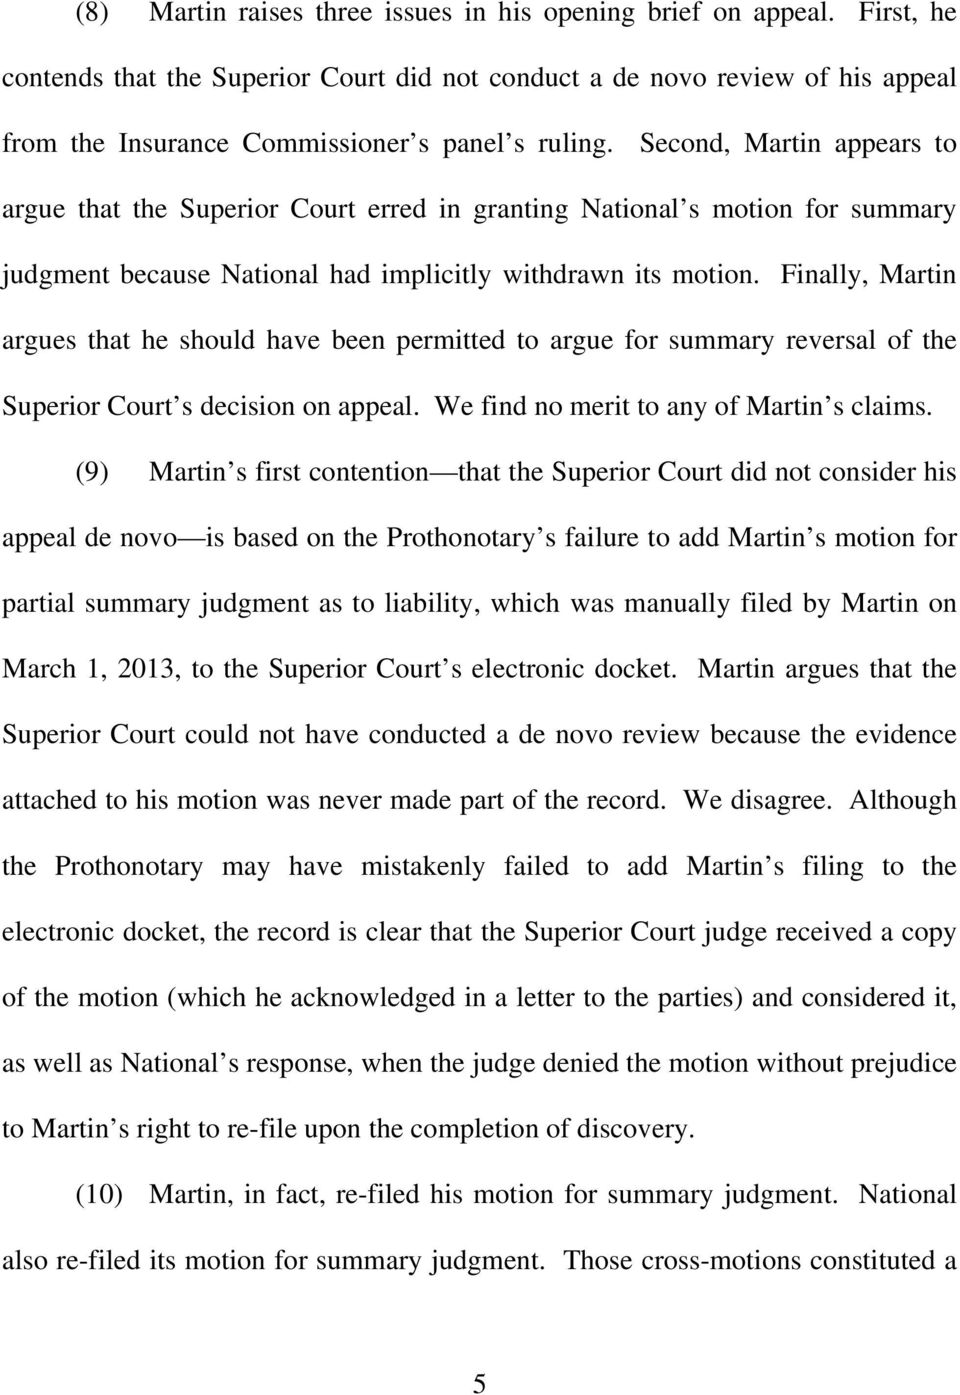 Second, Martin appears to argue that the Superior Court erred in granting National s motion for summary judgment because National had implicitly withdrawn its motion.